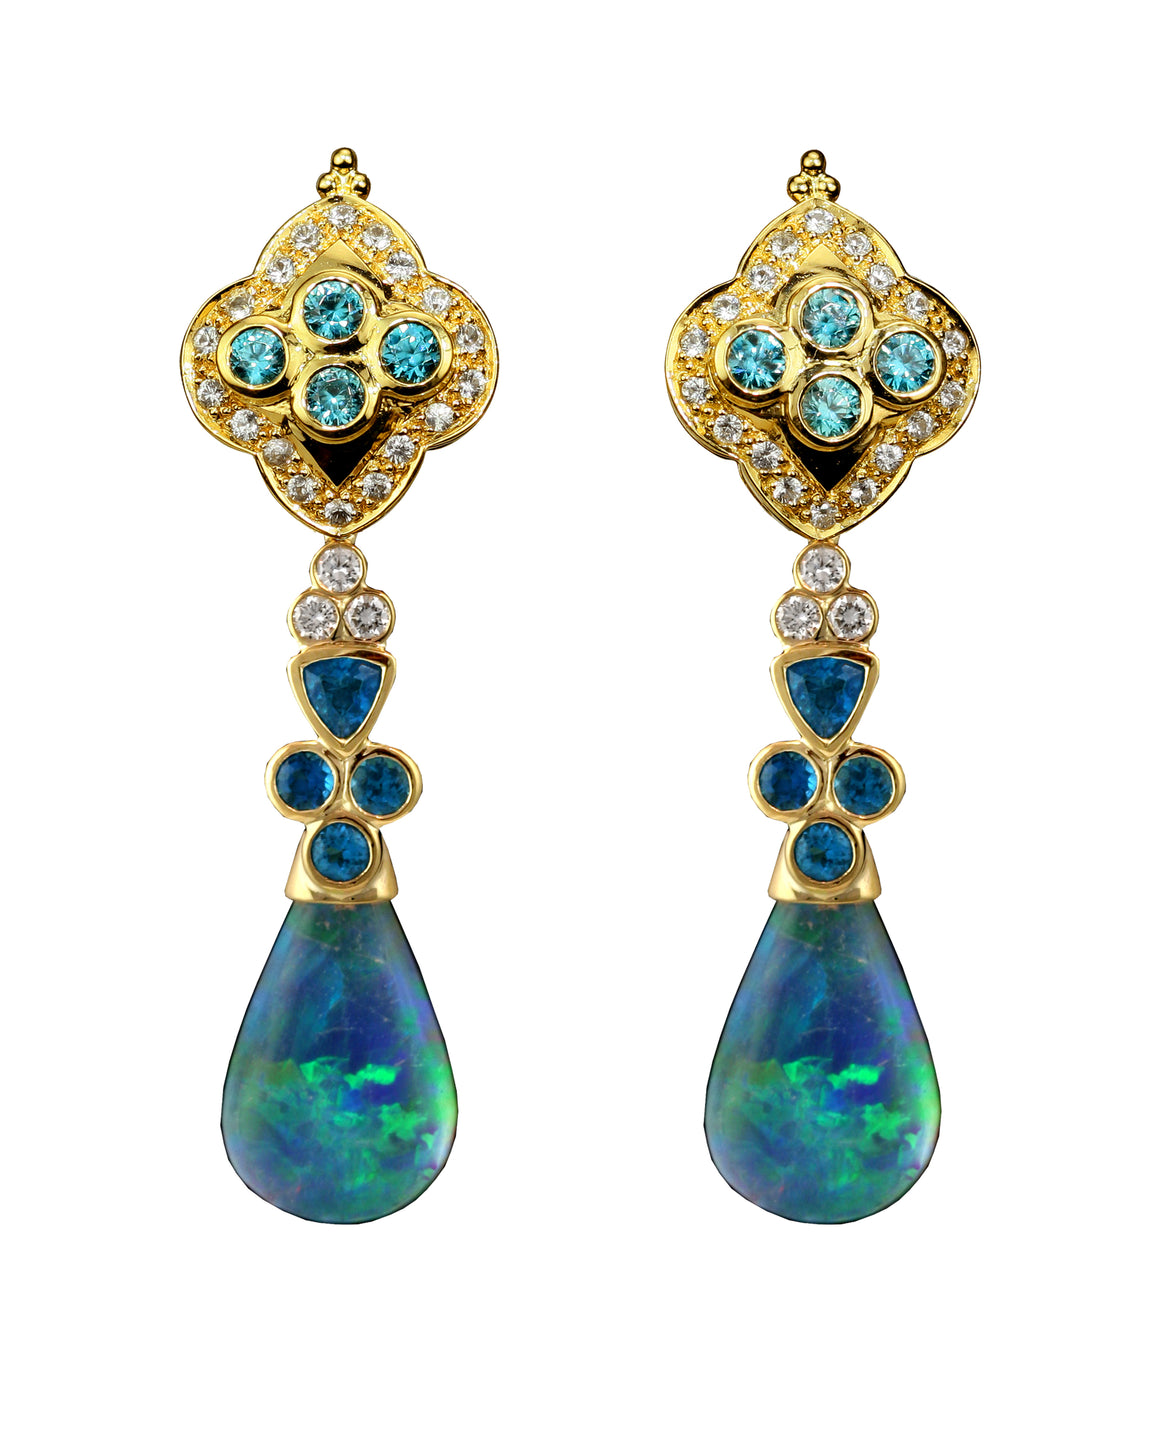 Neon Apatite and Lightning Ridge Opal Drop Earrings by Paula Crevoshay - Talisman Collection Fine Jewelers